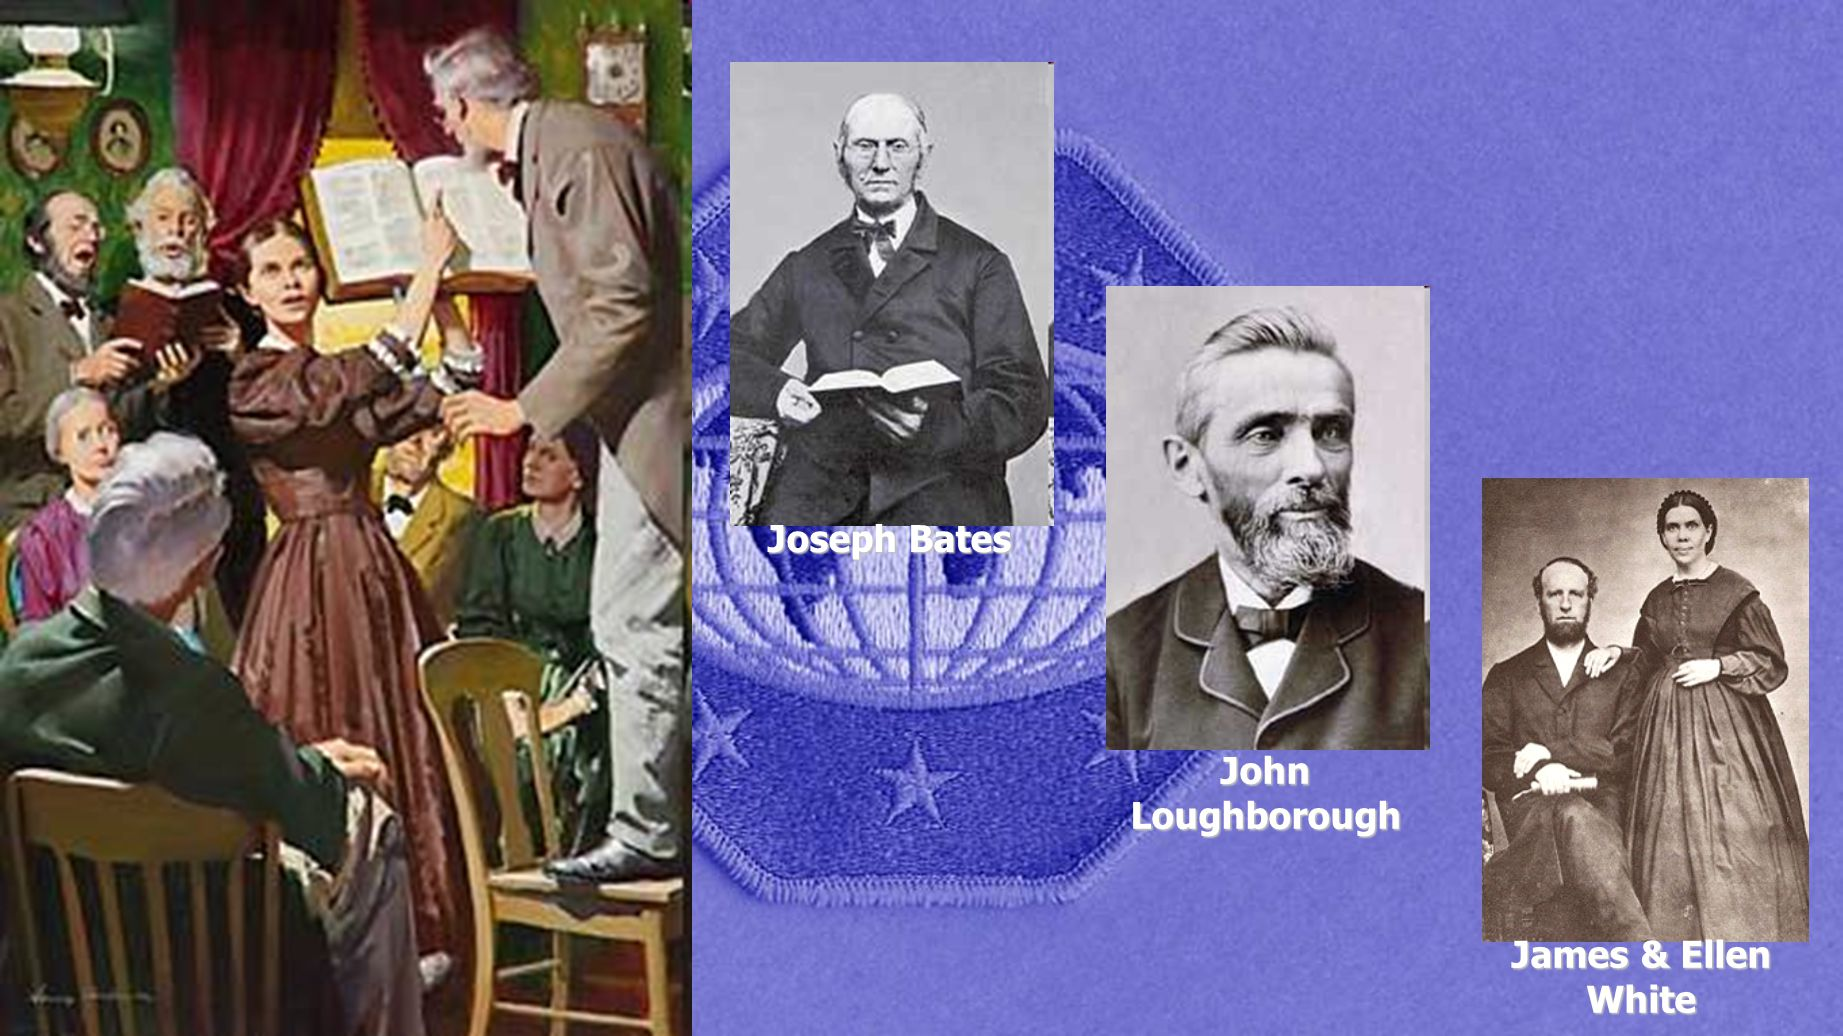 Joseph Bates John Loughborough James & Ellen White